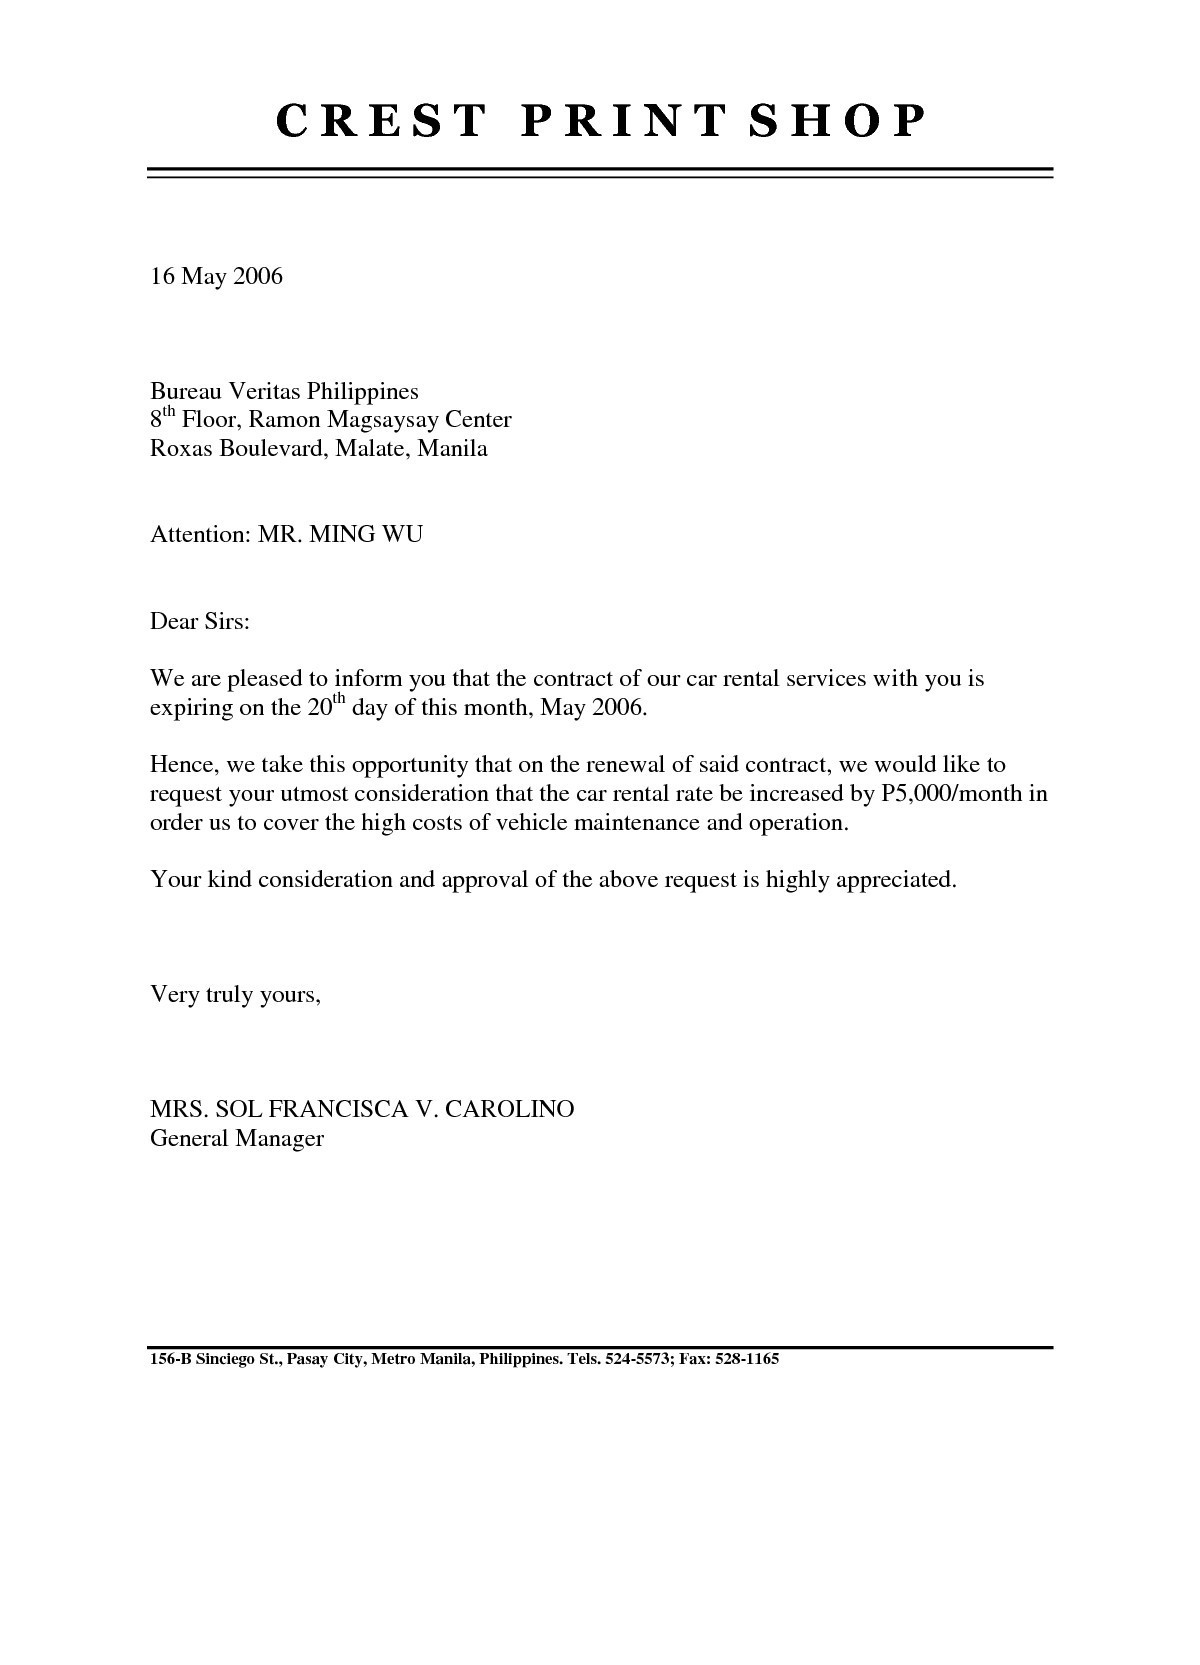 Landlord Agreement Letter Template - Tenancy Agreement Renewal Template